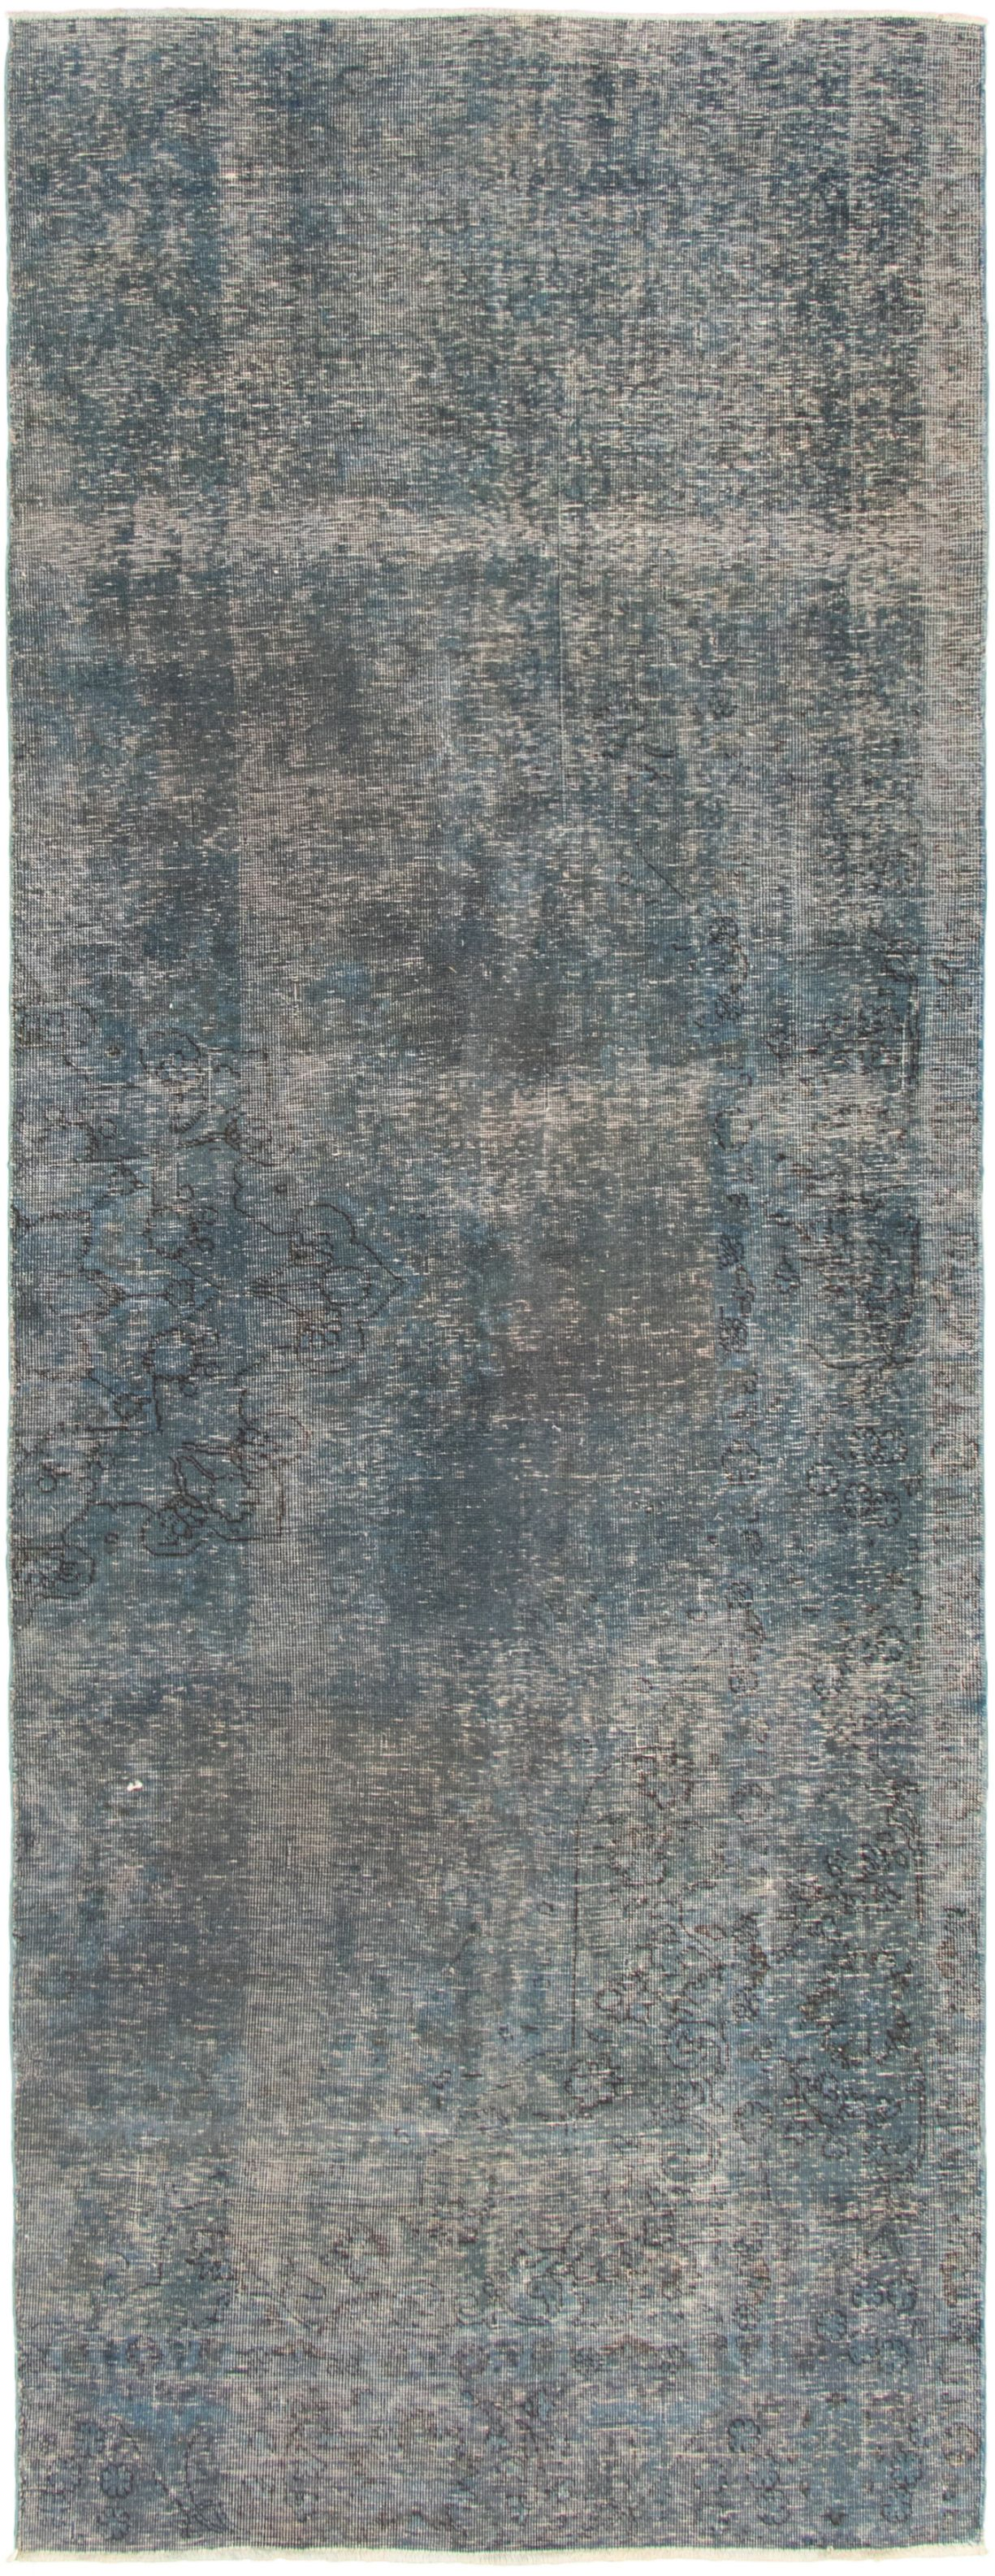 """Hand-knotted Color Transition Navy Blue Wool Rug 4'5"""" x 12'0"""" Size: 4'5"""" x 12'0"""""""